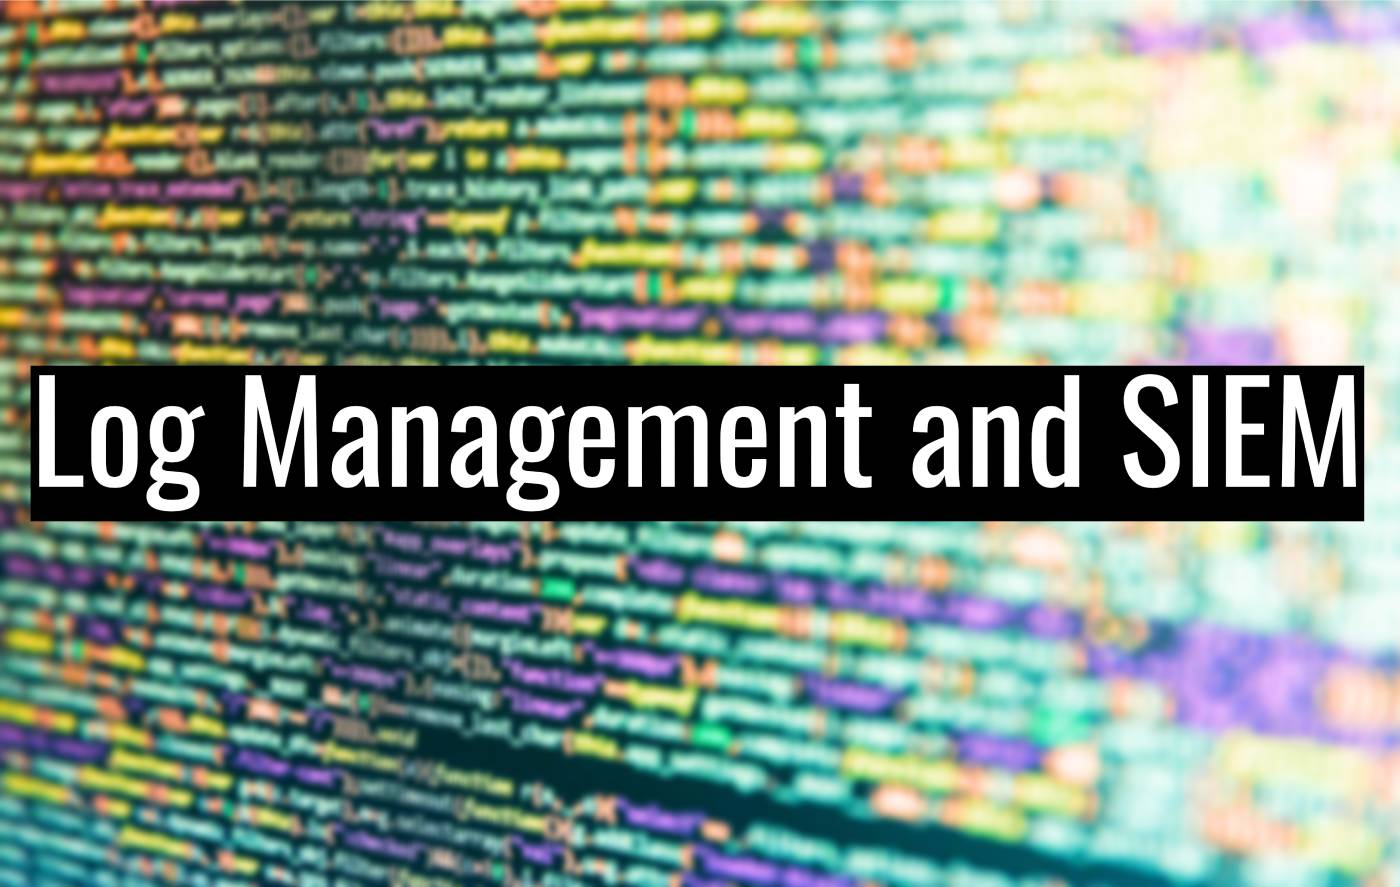 Log Management and SIEM Overview: Using Both for Enterprise CyberSecurity